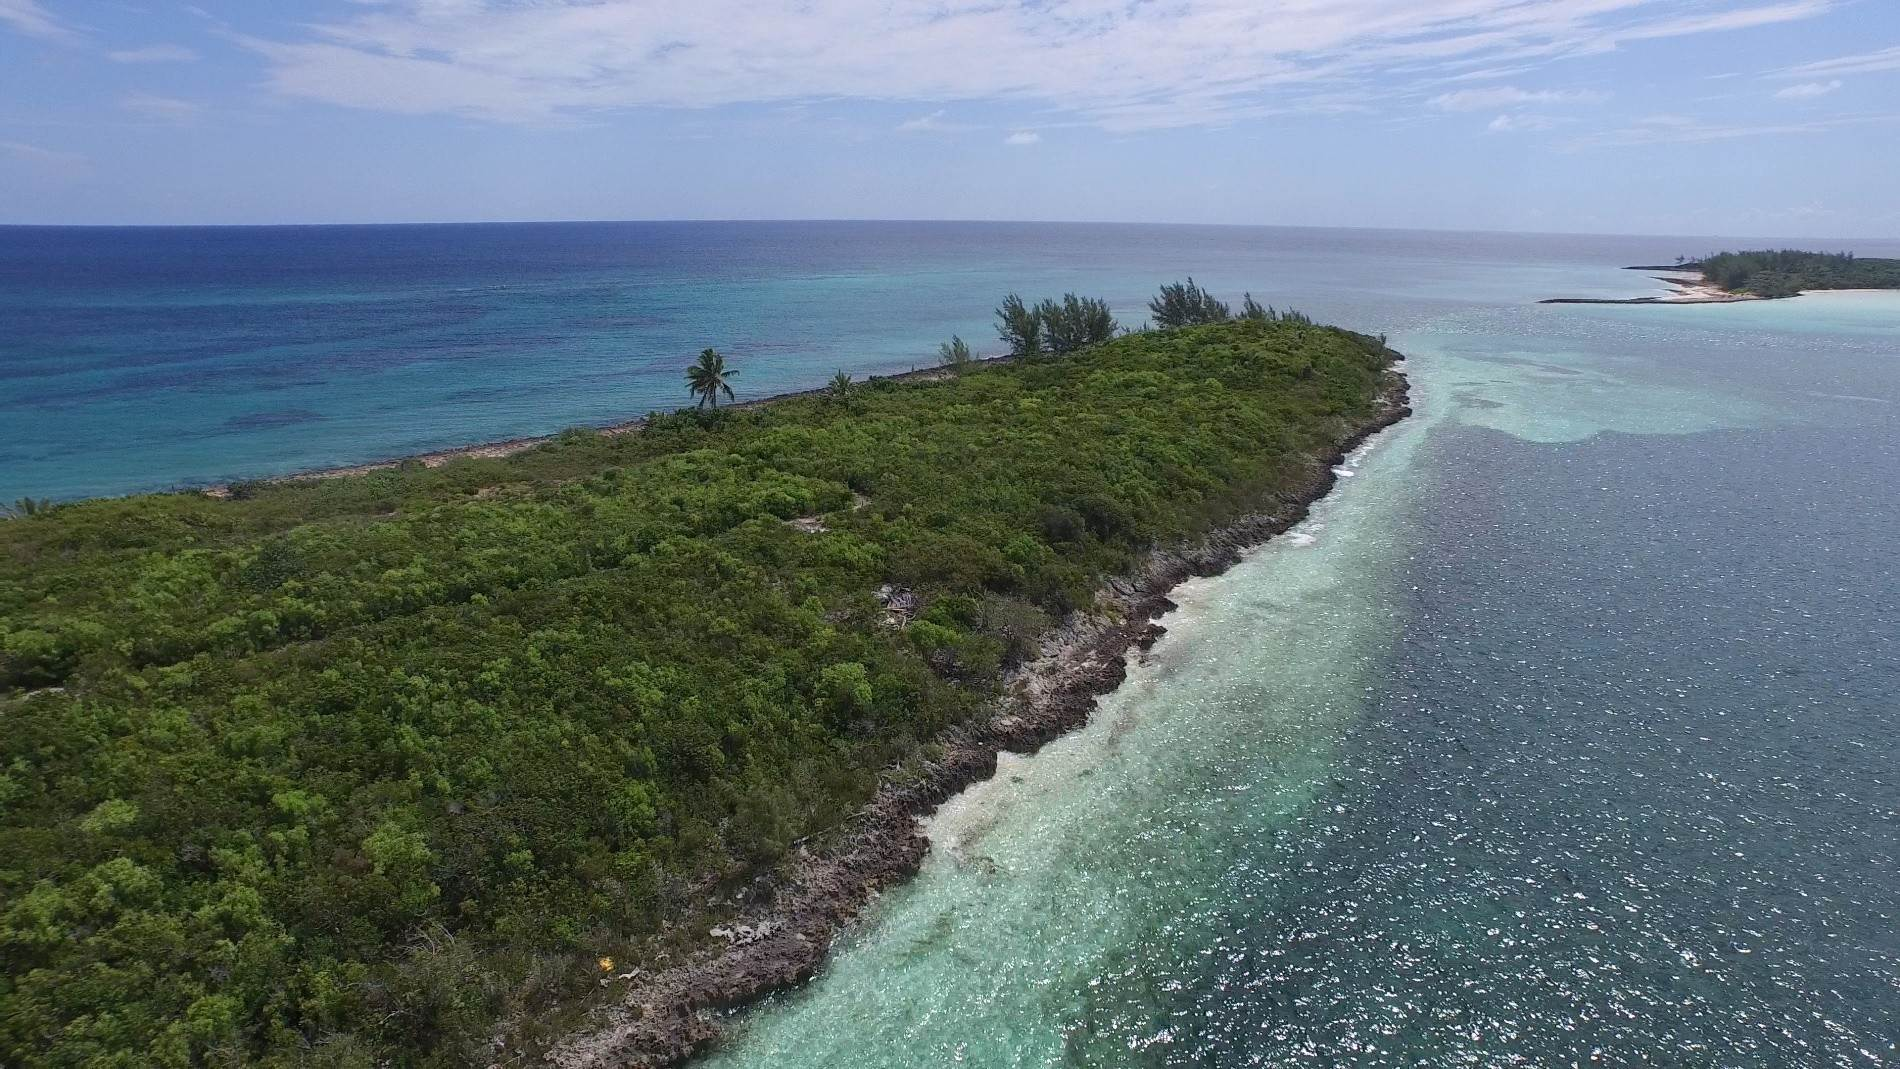 12. Private Islands for Sale at Pierre Island, A Perfect Private Retreat Island Near Harbour Island - MLS 40806 Harbour Island, Eleuthera, Bahamas